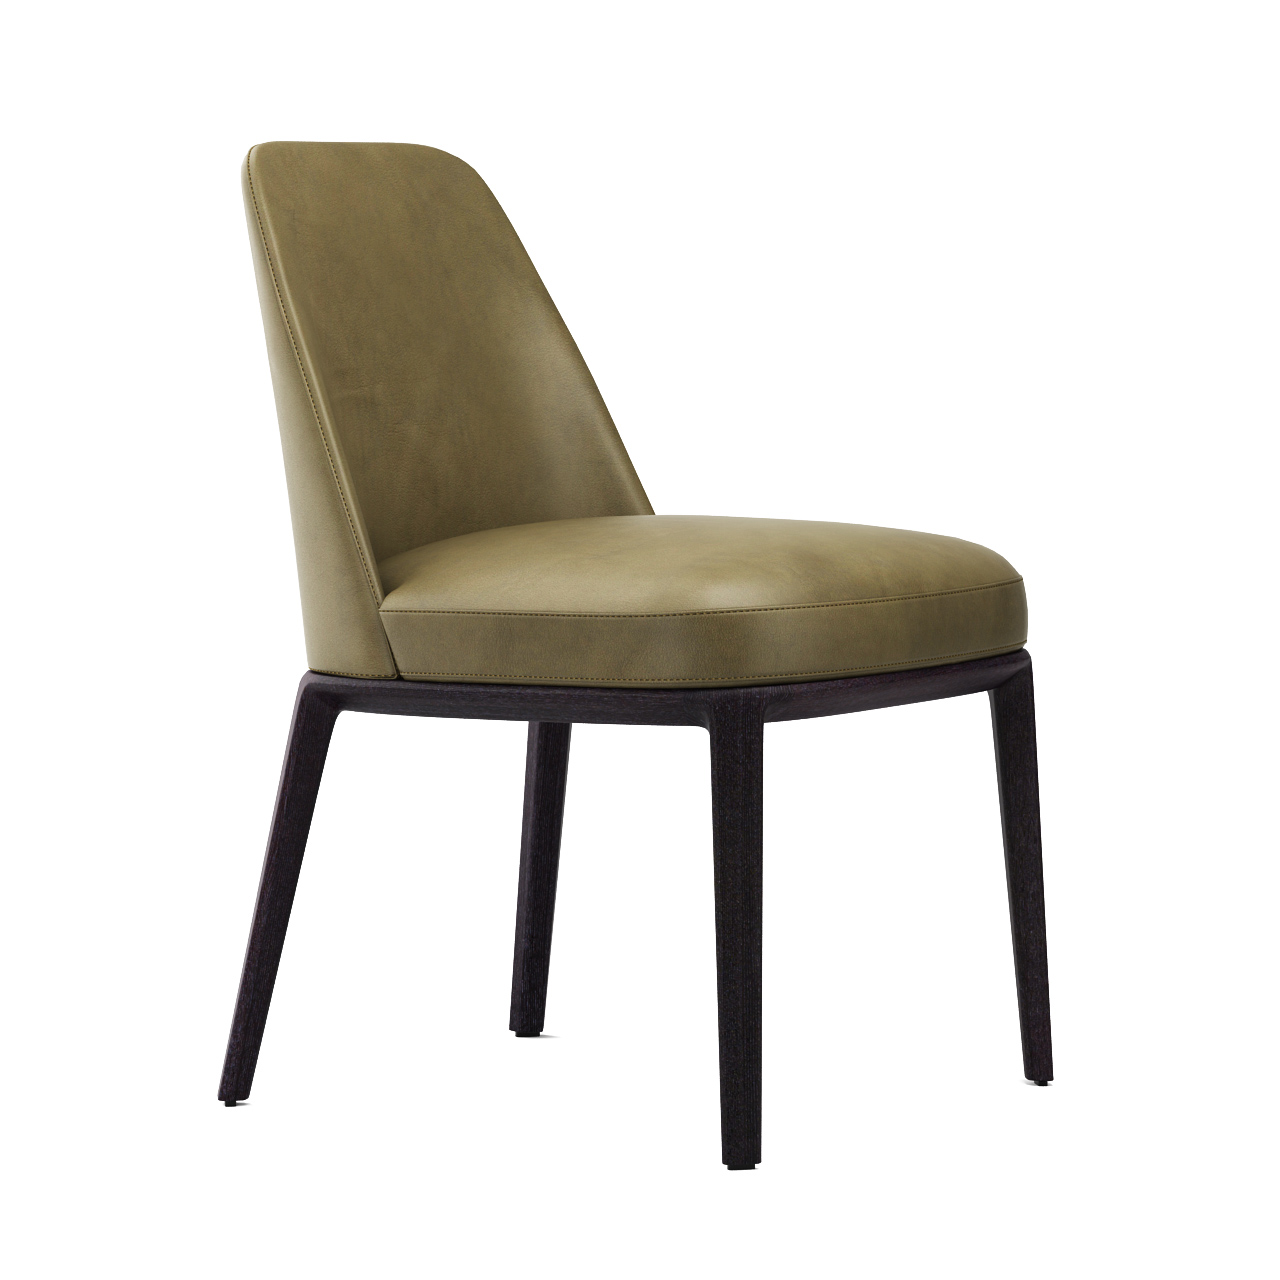 Sophie Chair by Poliform